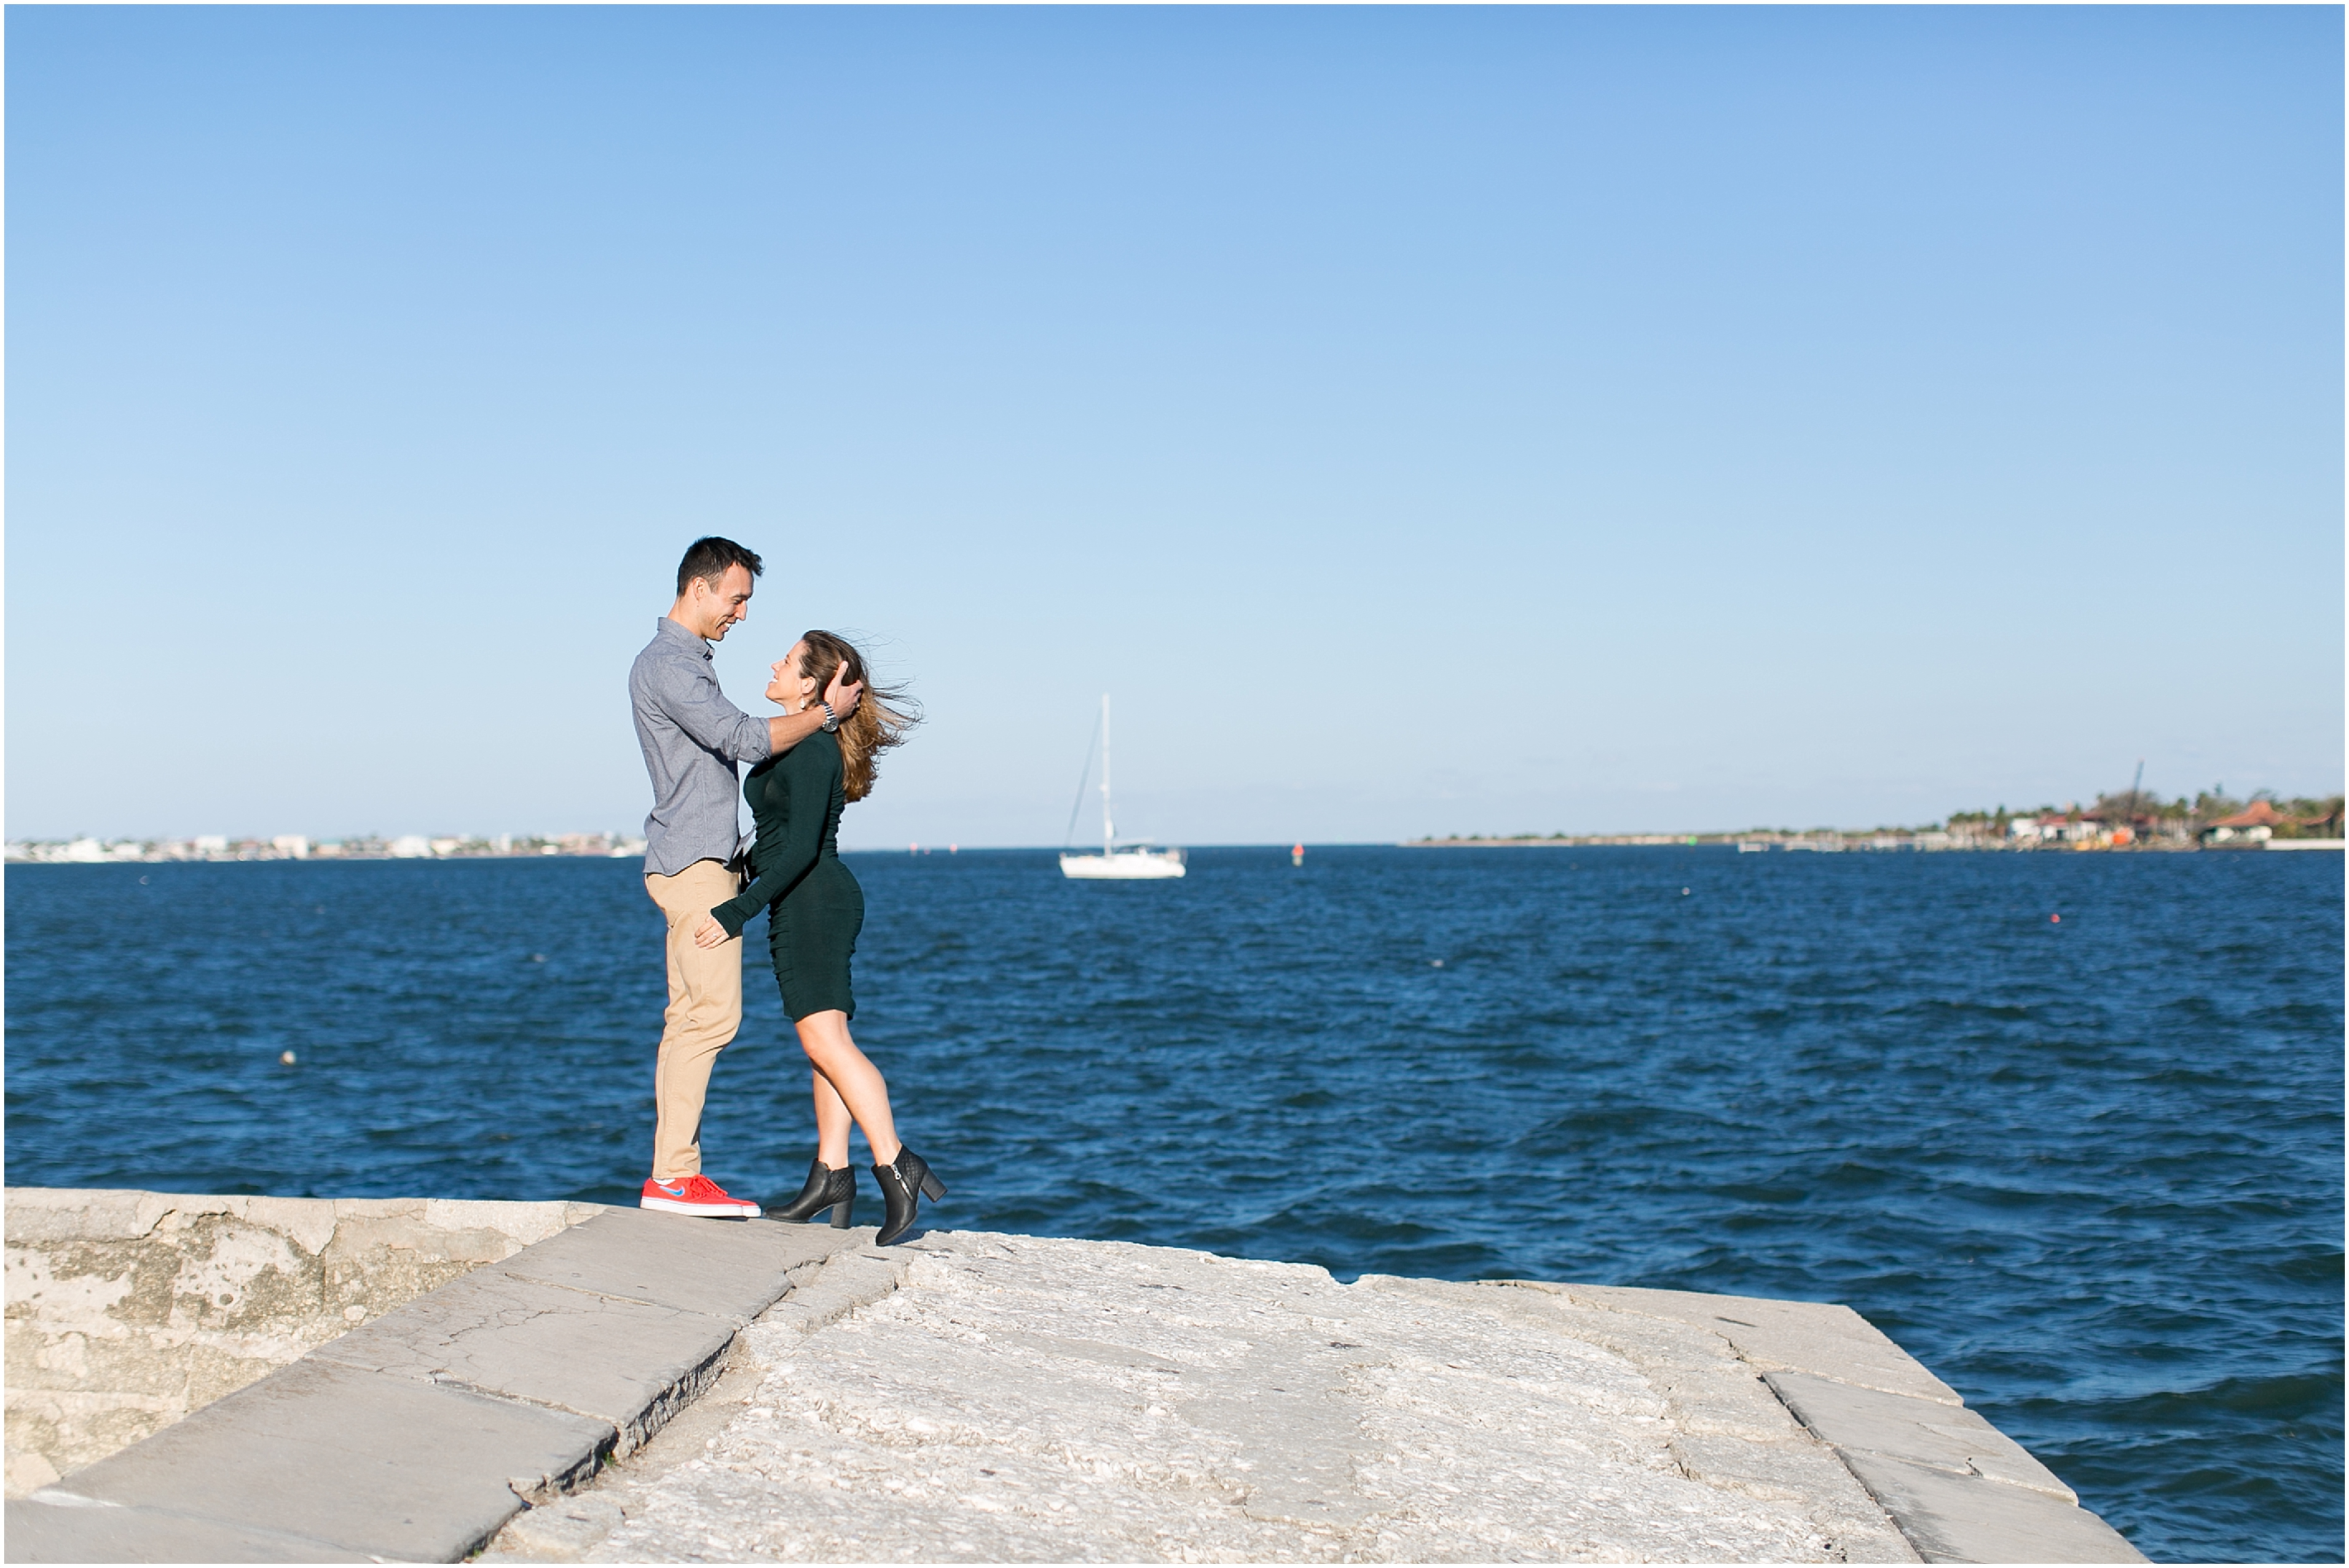 va_jessica_ryan_photography_st_augustine_florida_destination_engagement_photography_0117